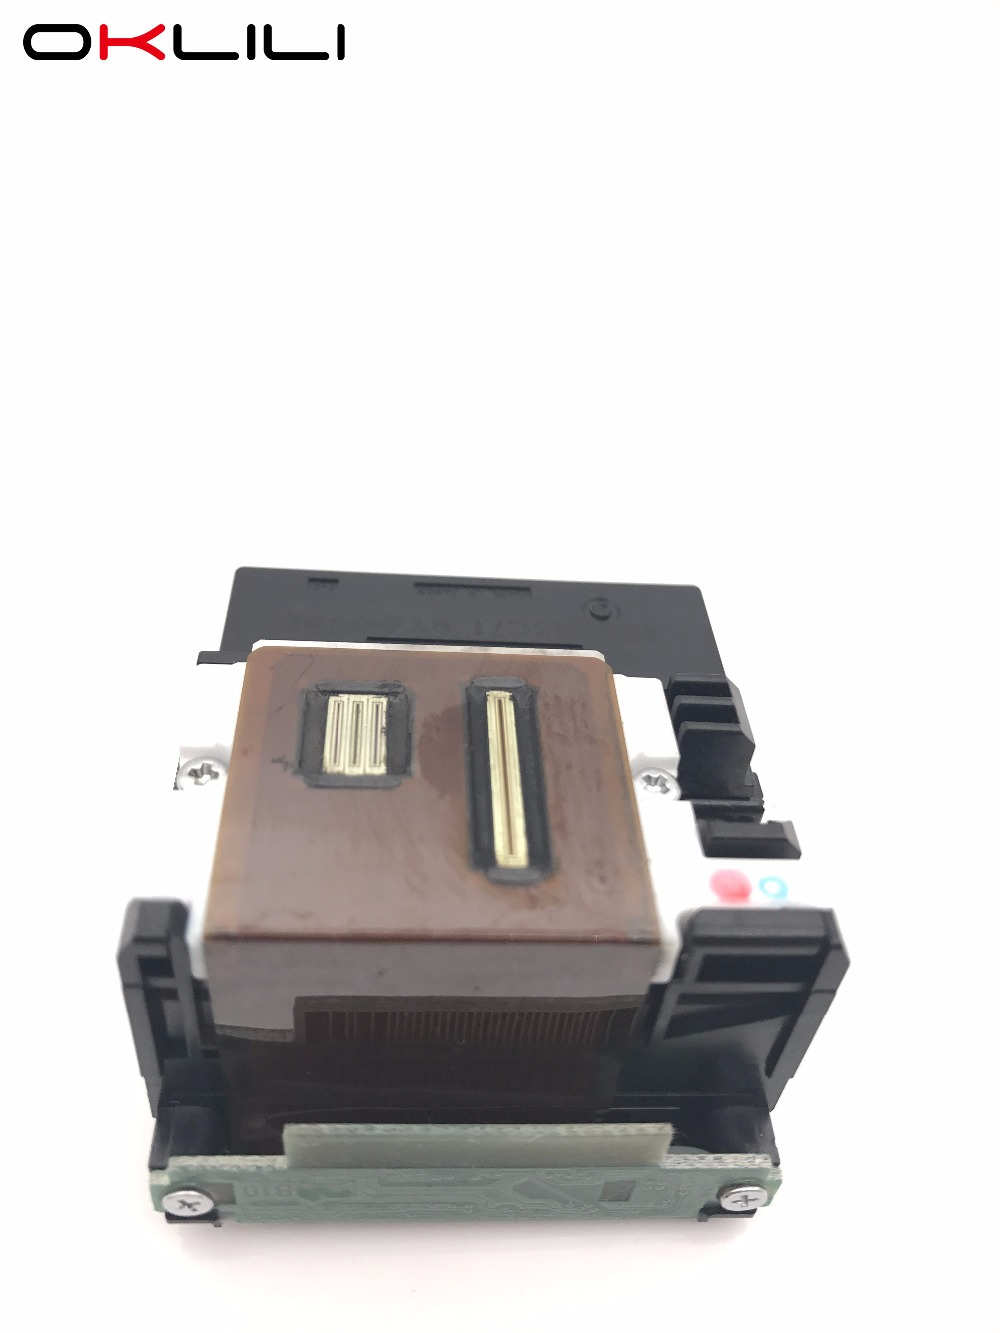 OKLILI ORIGINAL QY6-0052 QY6-0052-000 Printhead Print Head for Canon PIXUS 80i i80 iP90 iP90v CF-PL90 PL95 PL90W PL95W oklili original qy6 0050 qy6 0050 000 printhead print head printer head for canon pixus 900pd i900d i950d ip6100d ip6000d